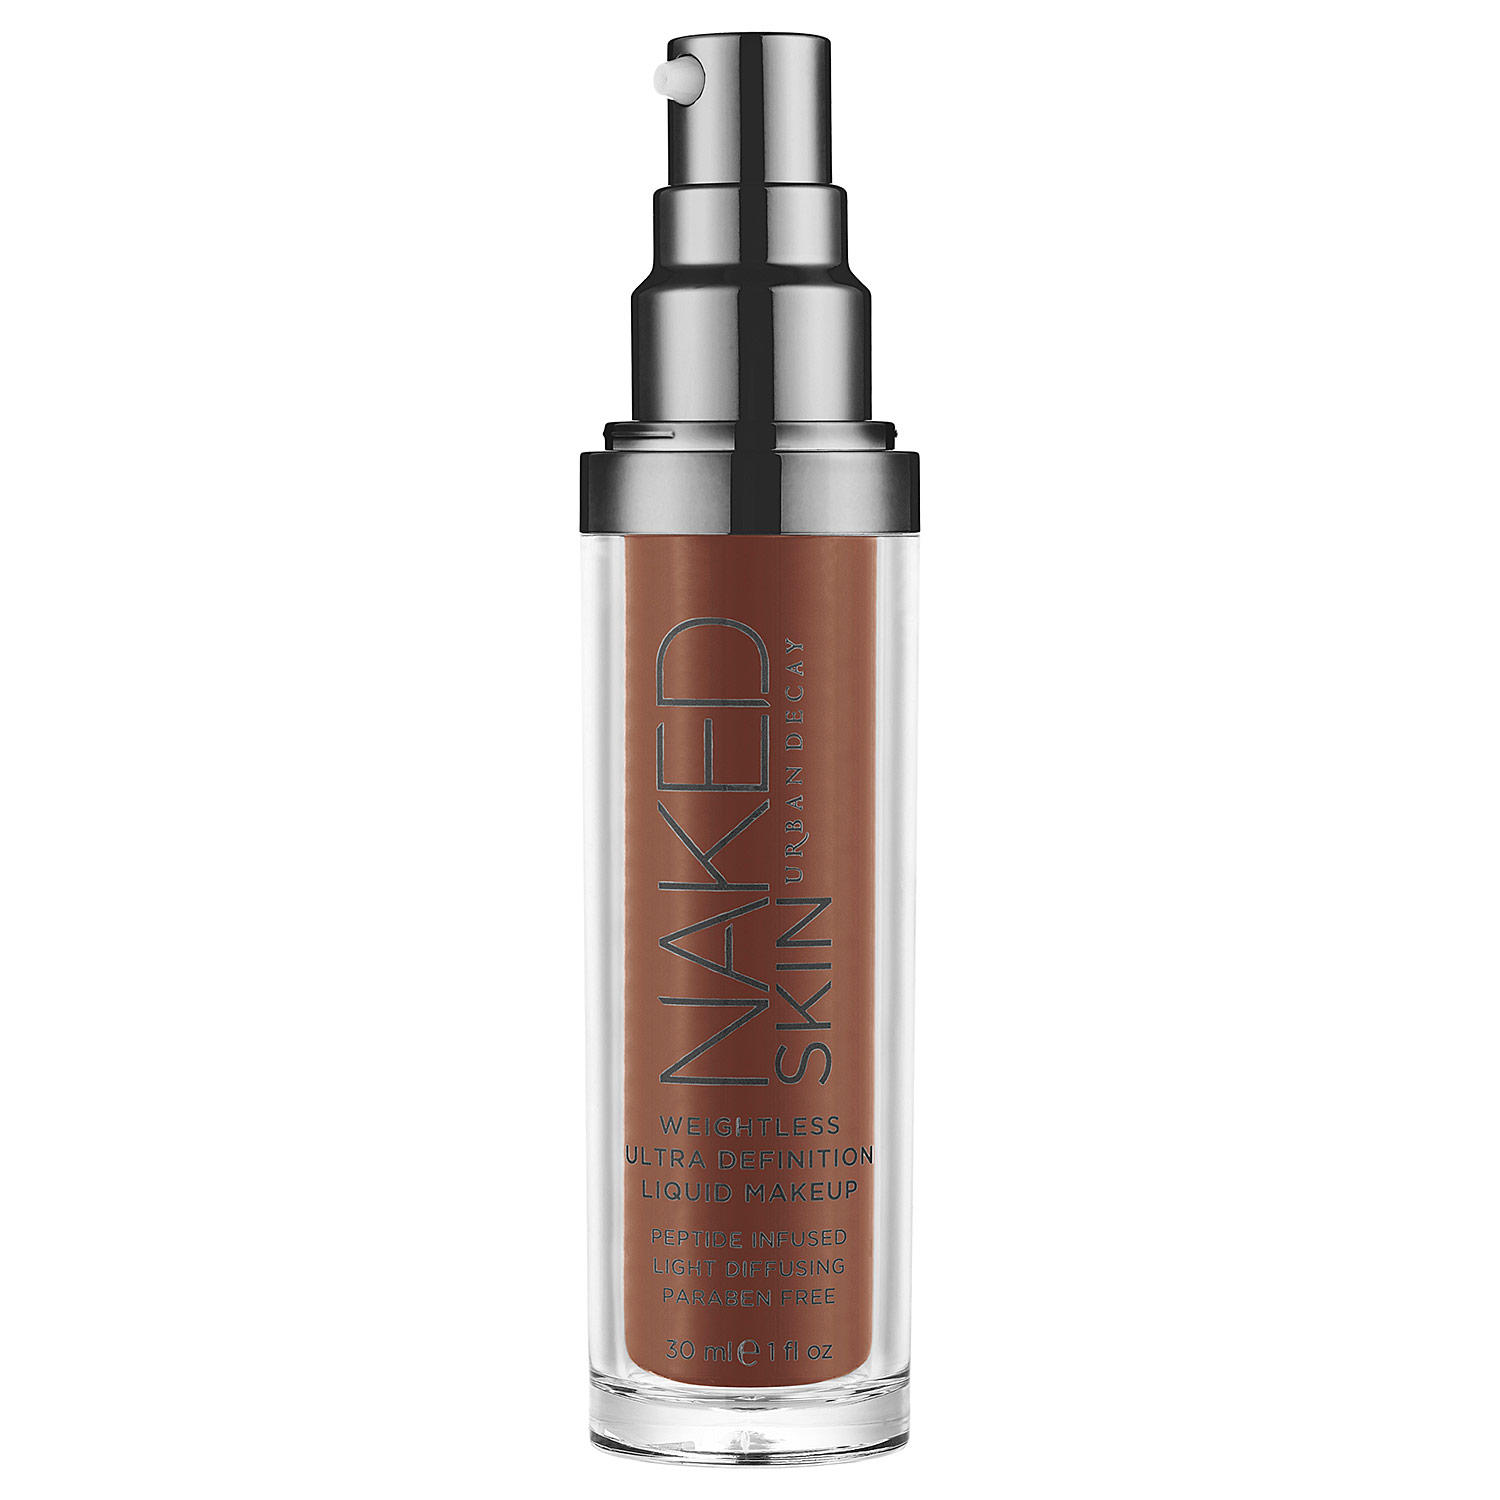 Urban Decay Naked Skin Weightless Ultra Definition Liquid Makeup 11.0